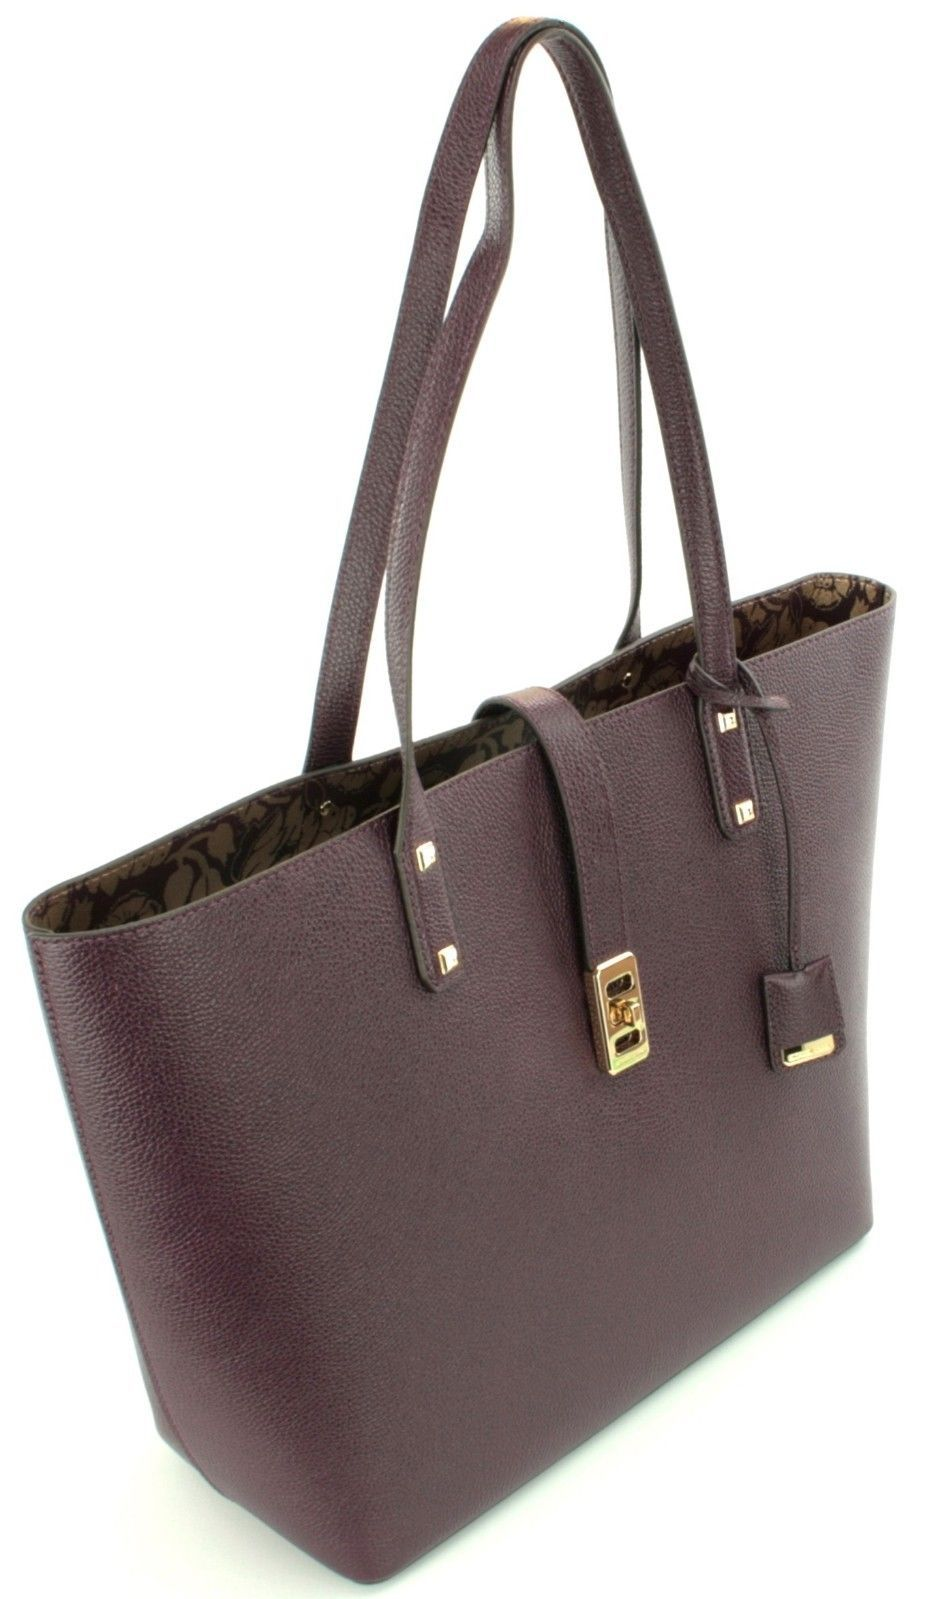 Michael Kors Karson Large Shopper Tote Bag Leather Damson Purple Handbag